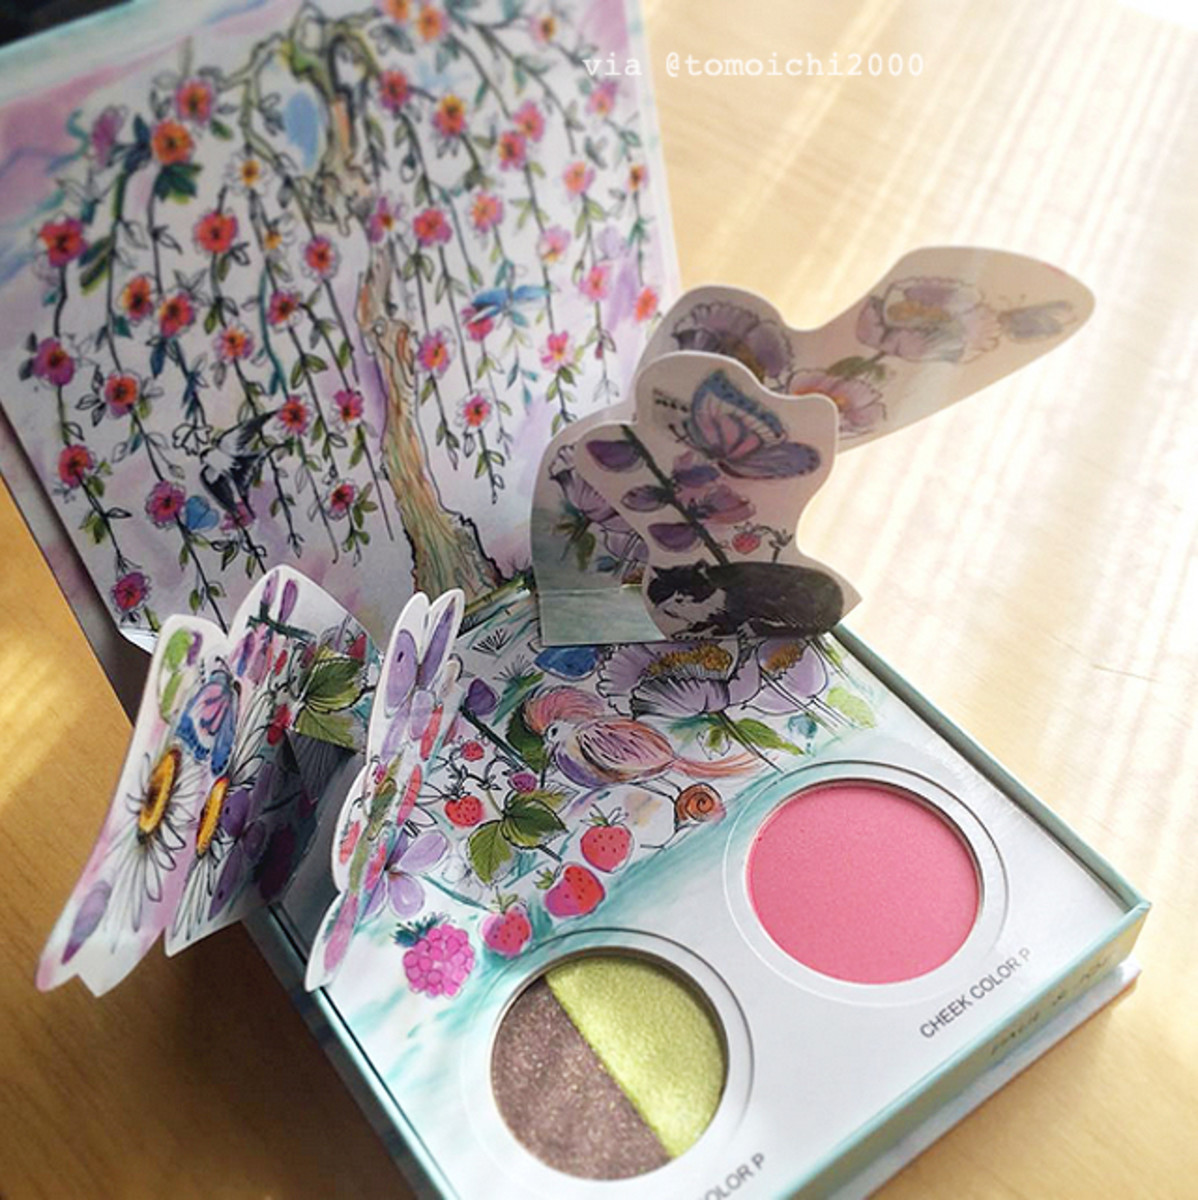 Paul & Joe Beauté Spring 2016 Papillons de Printemps #2